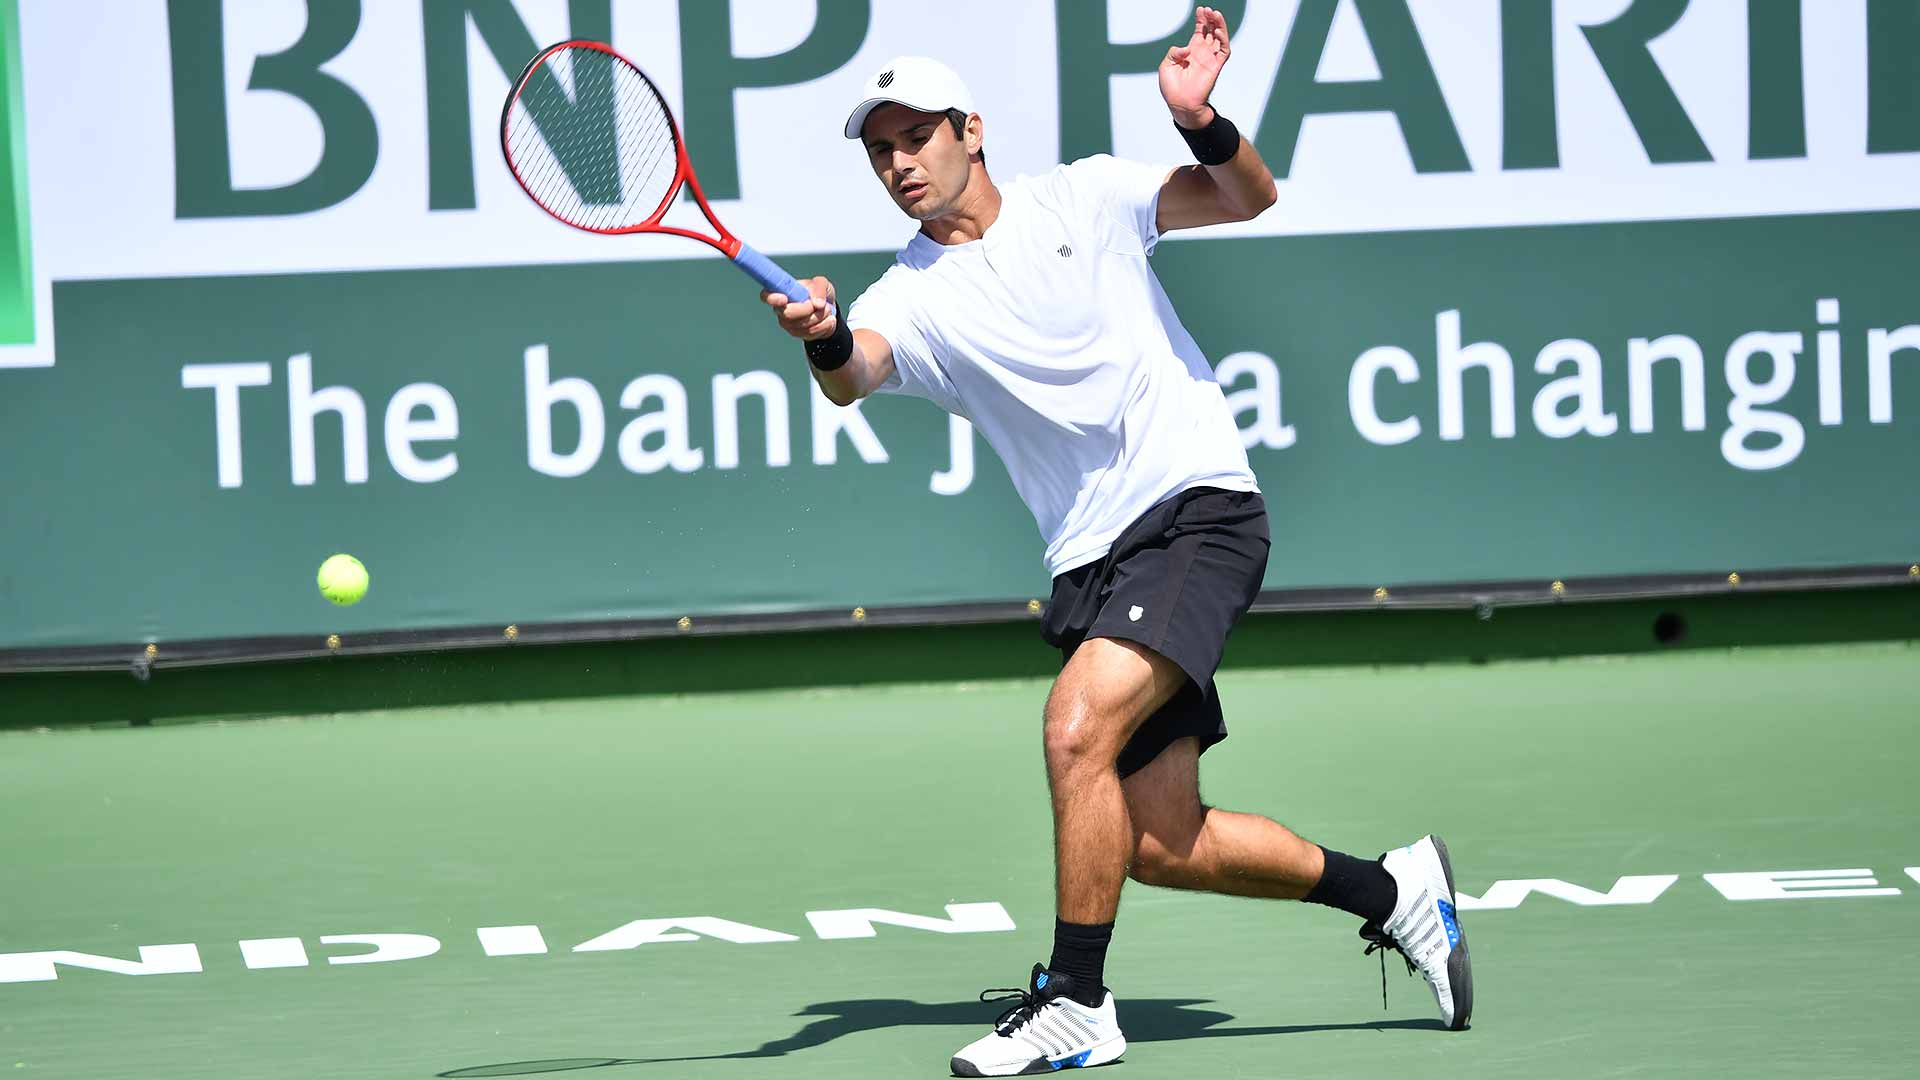 Marcos Giron will face Milos Raonic at the BNP Paribas Open in Indian Wells